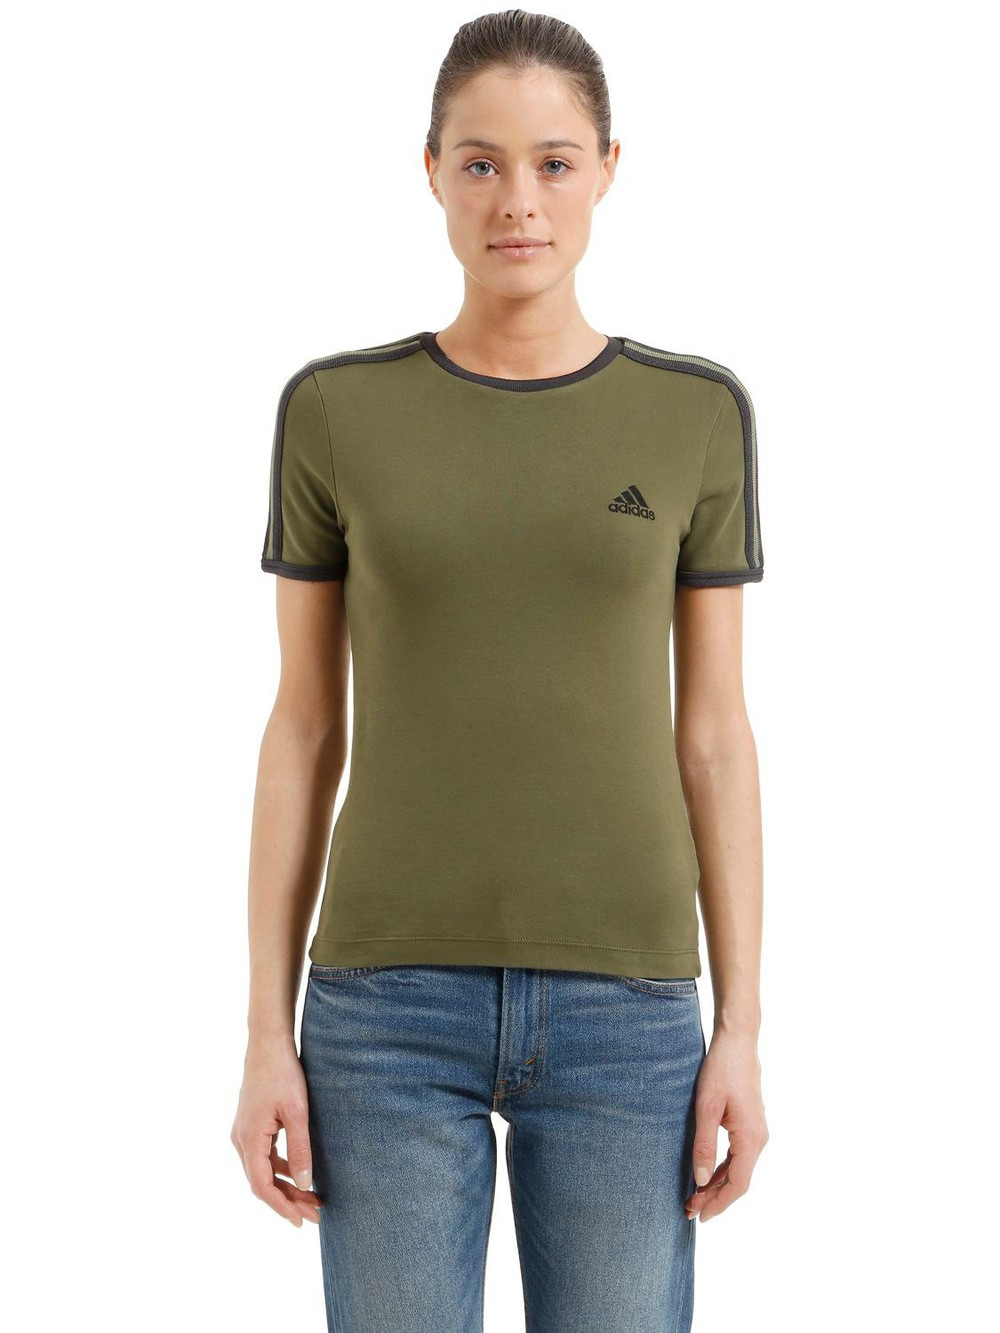 YEEZY Baby Fit Cotton Jersey T-shirt in black / green